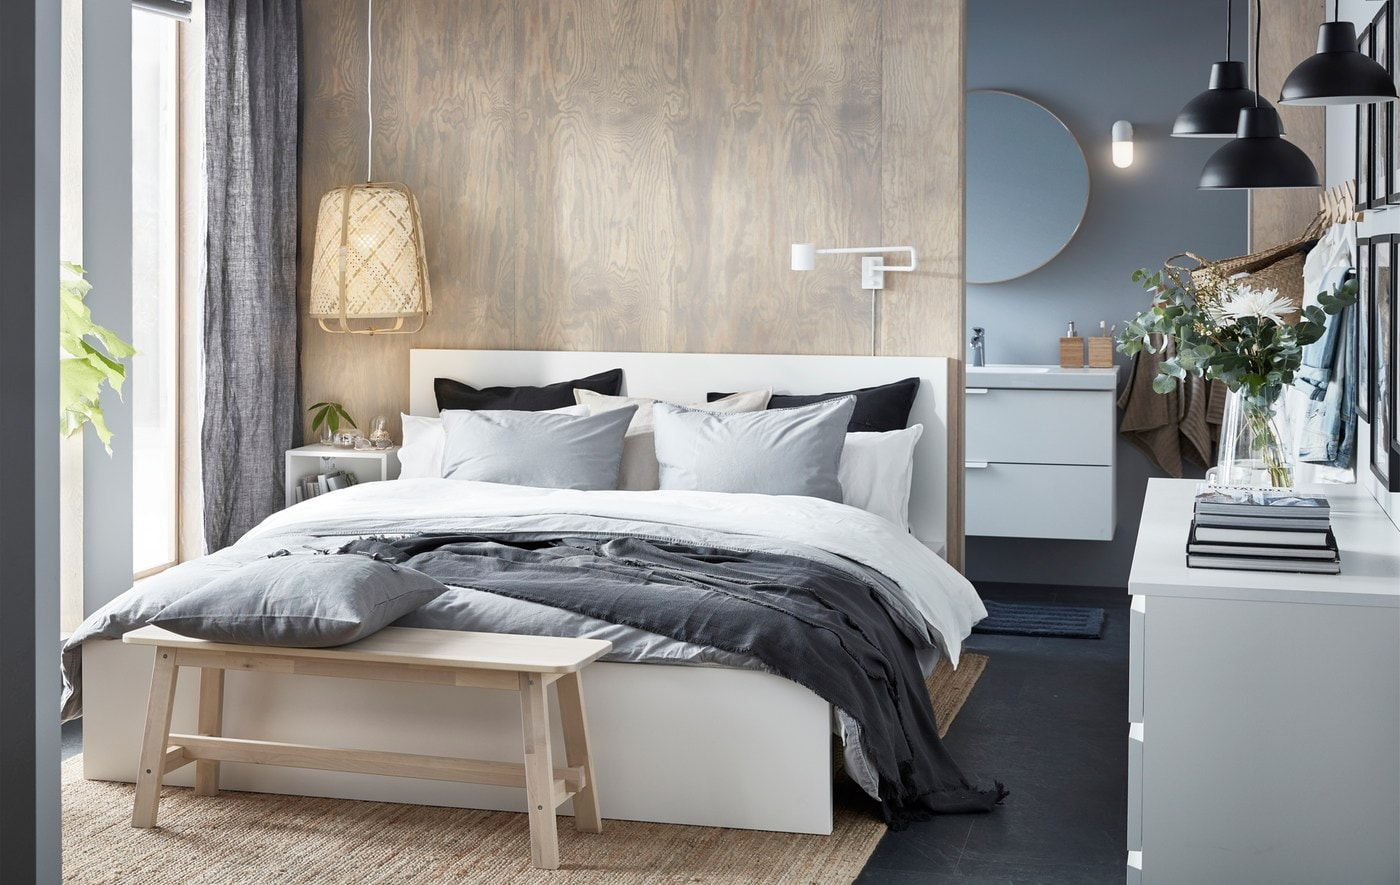 Minimalist Luxury In A Small And Stylish Bedroom